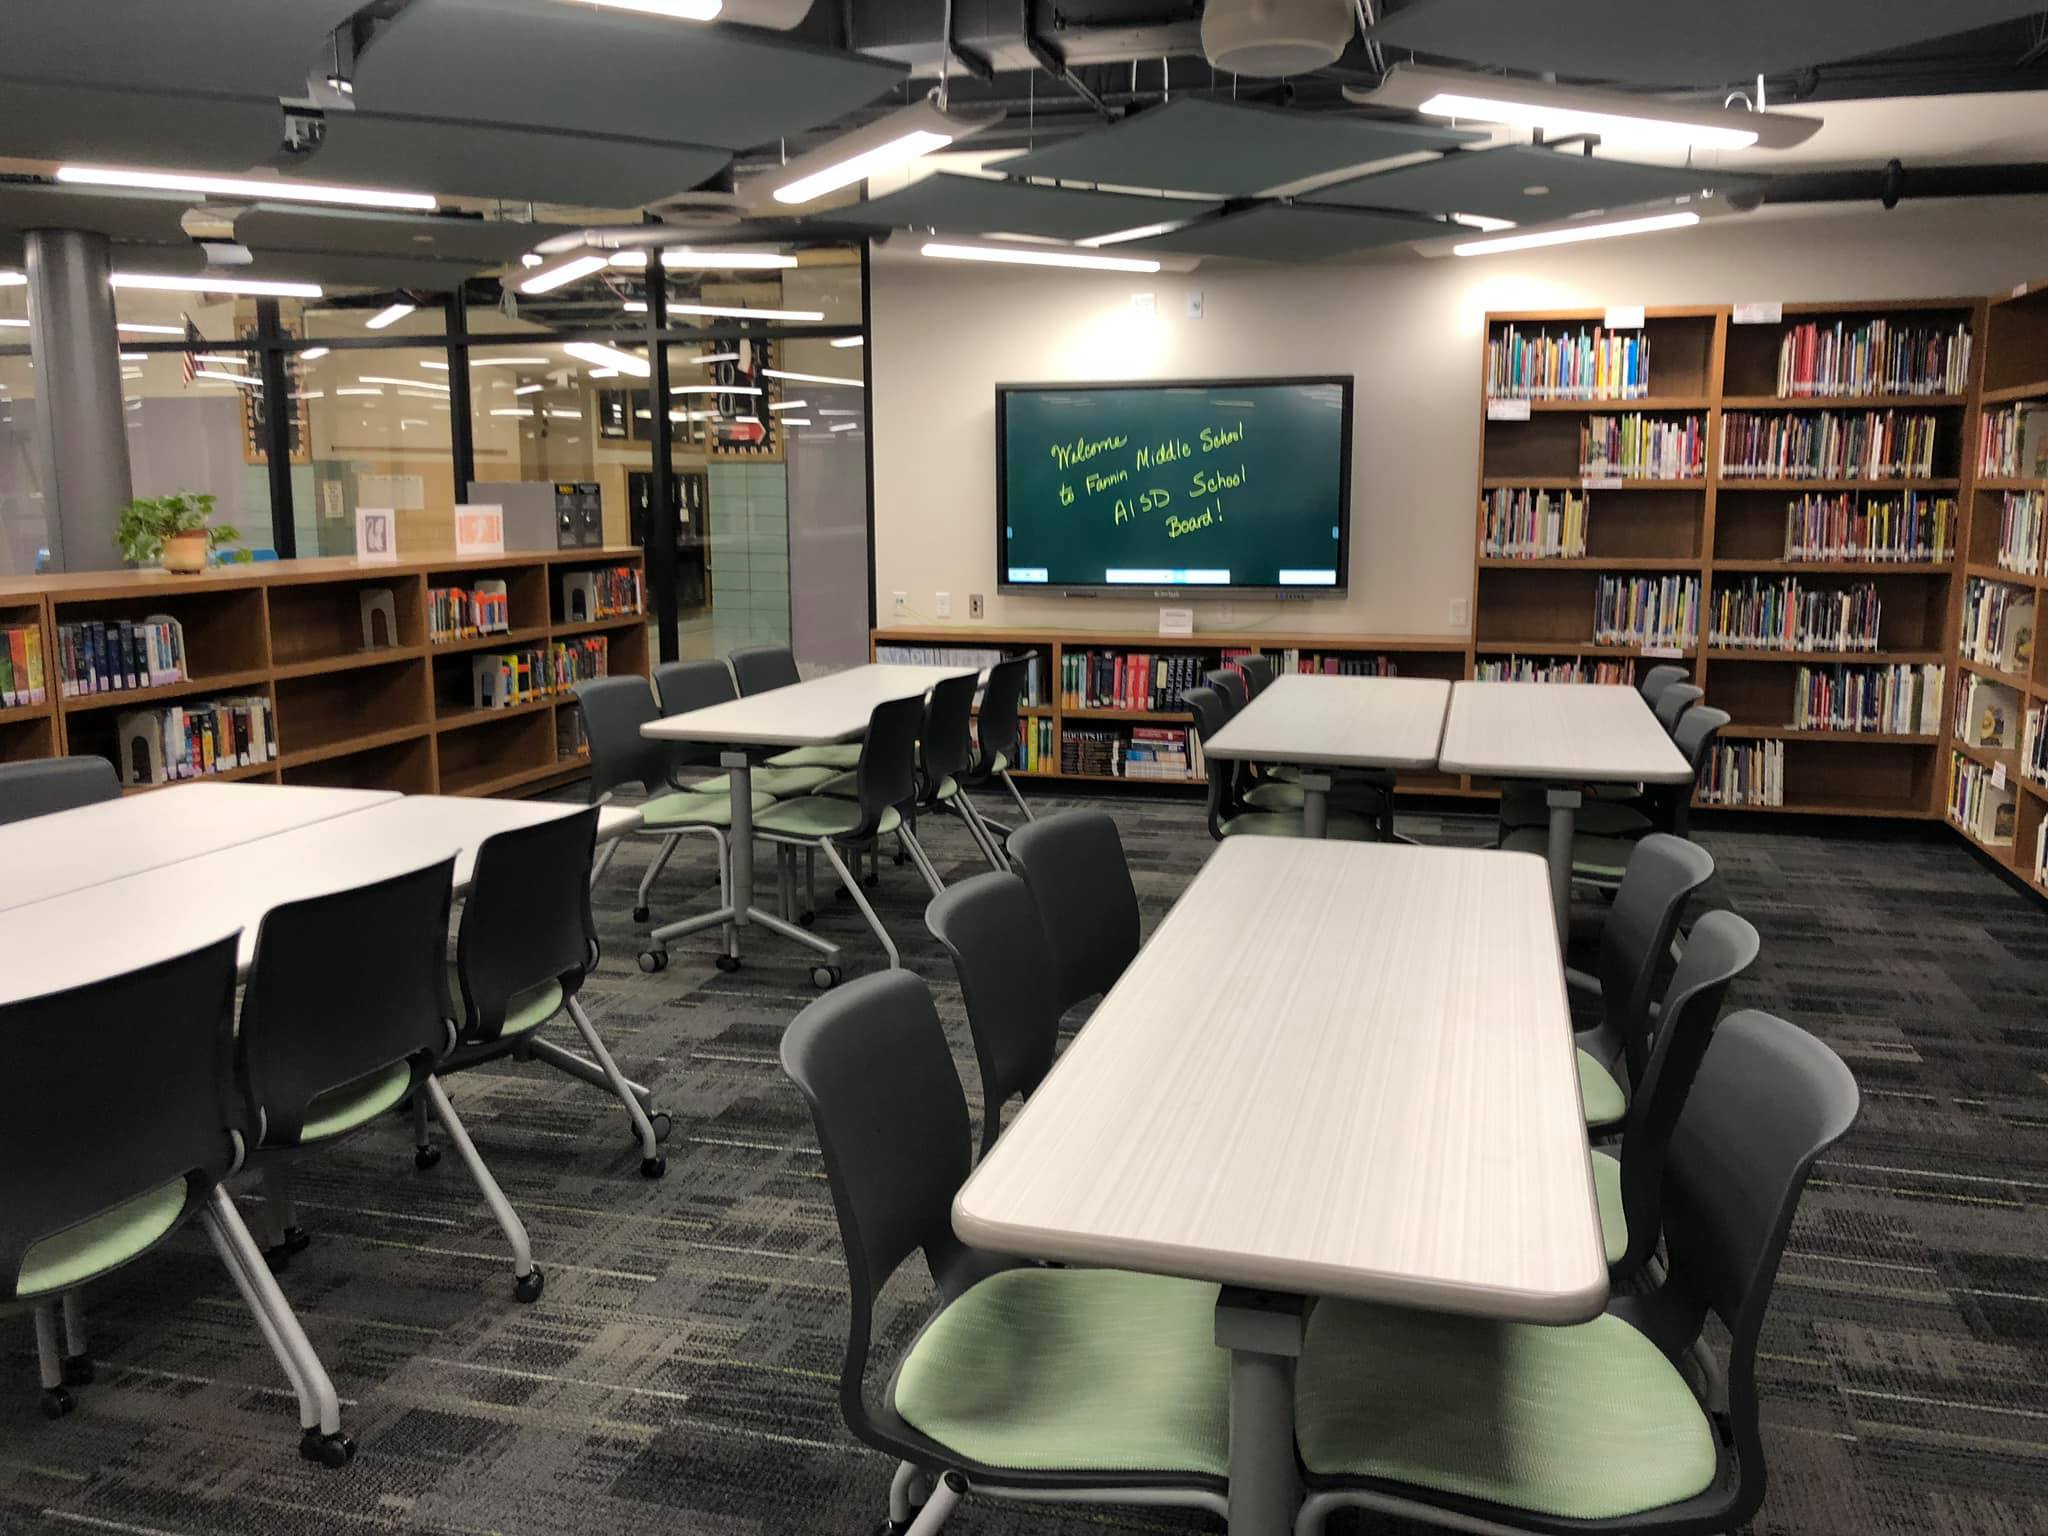 New library2